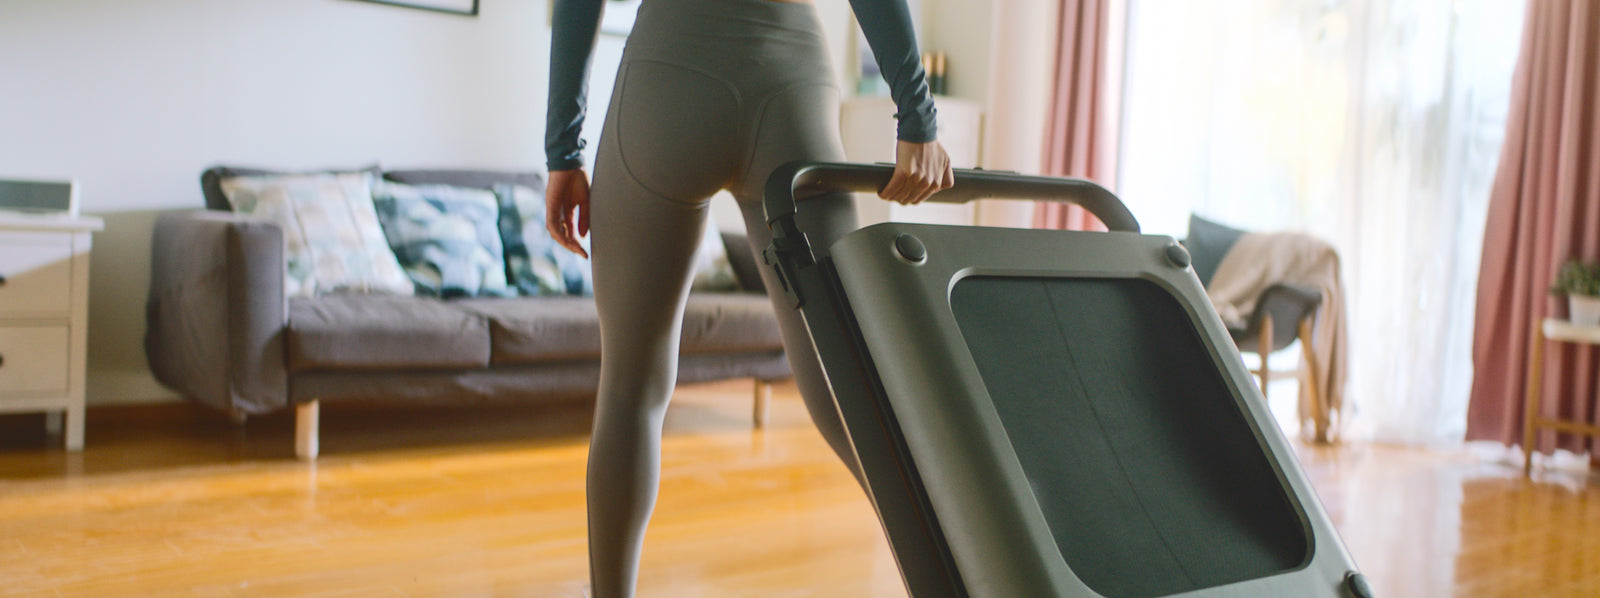 iQ Foldable Treadmill